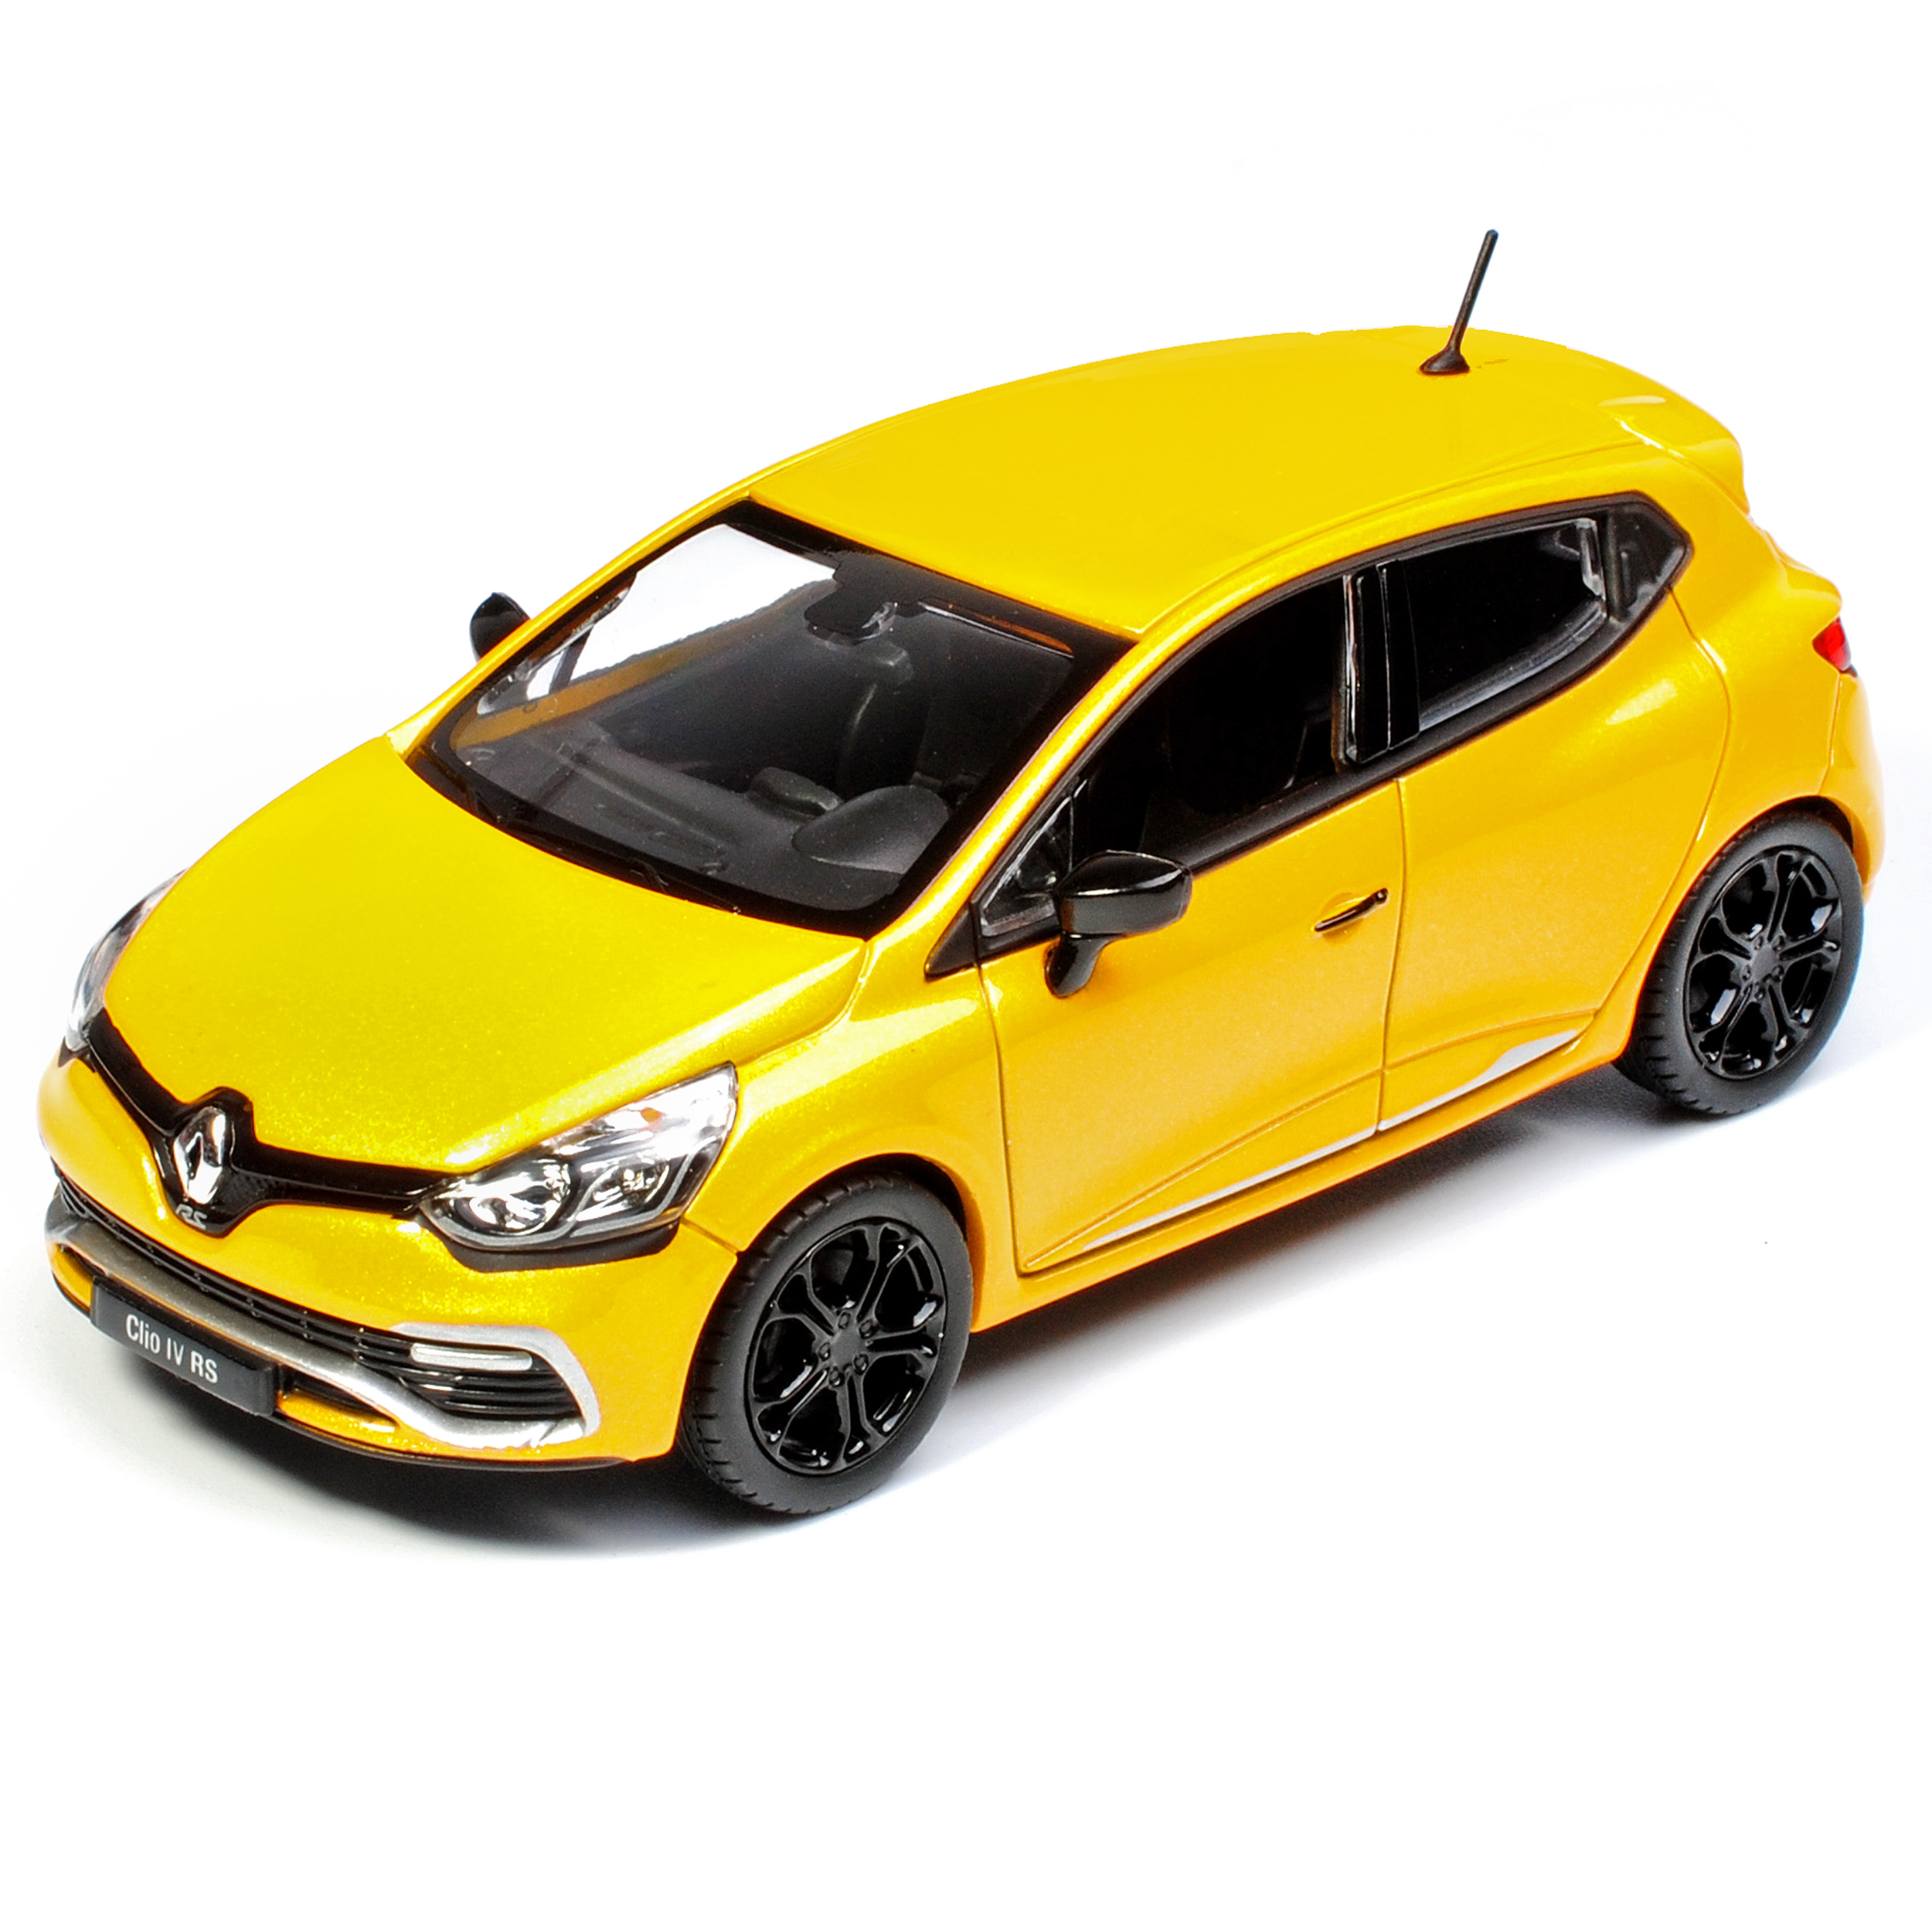 Reno Clio Sport: Renault Clio RS IV X98 Yellow 5 Door 4. Generation From